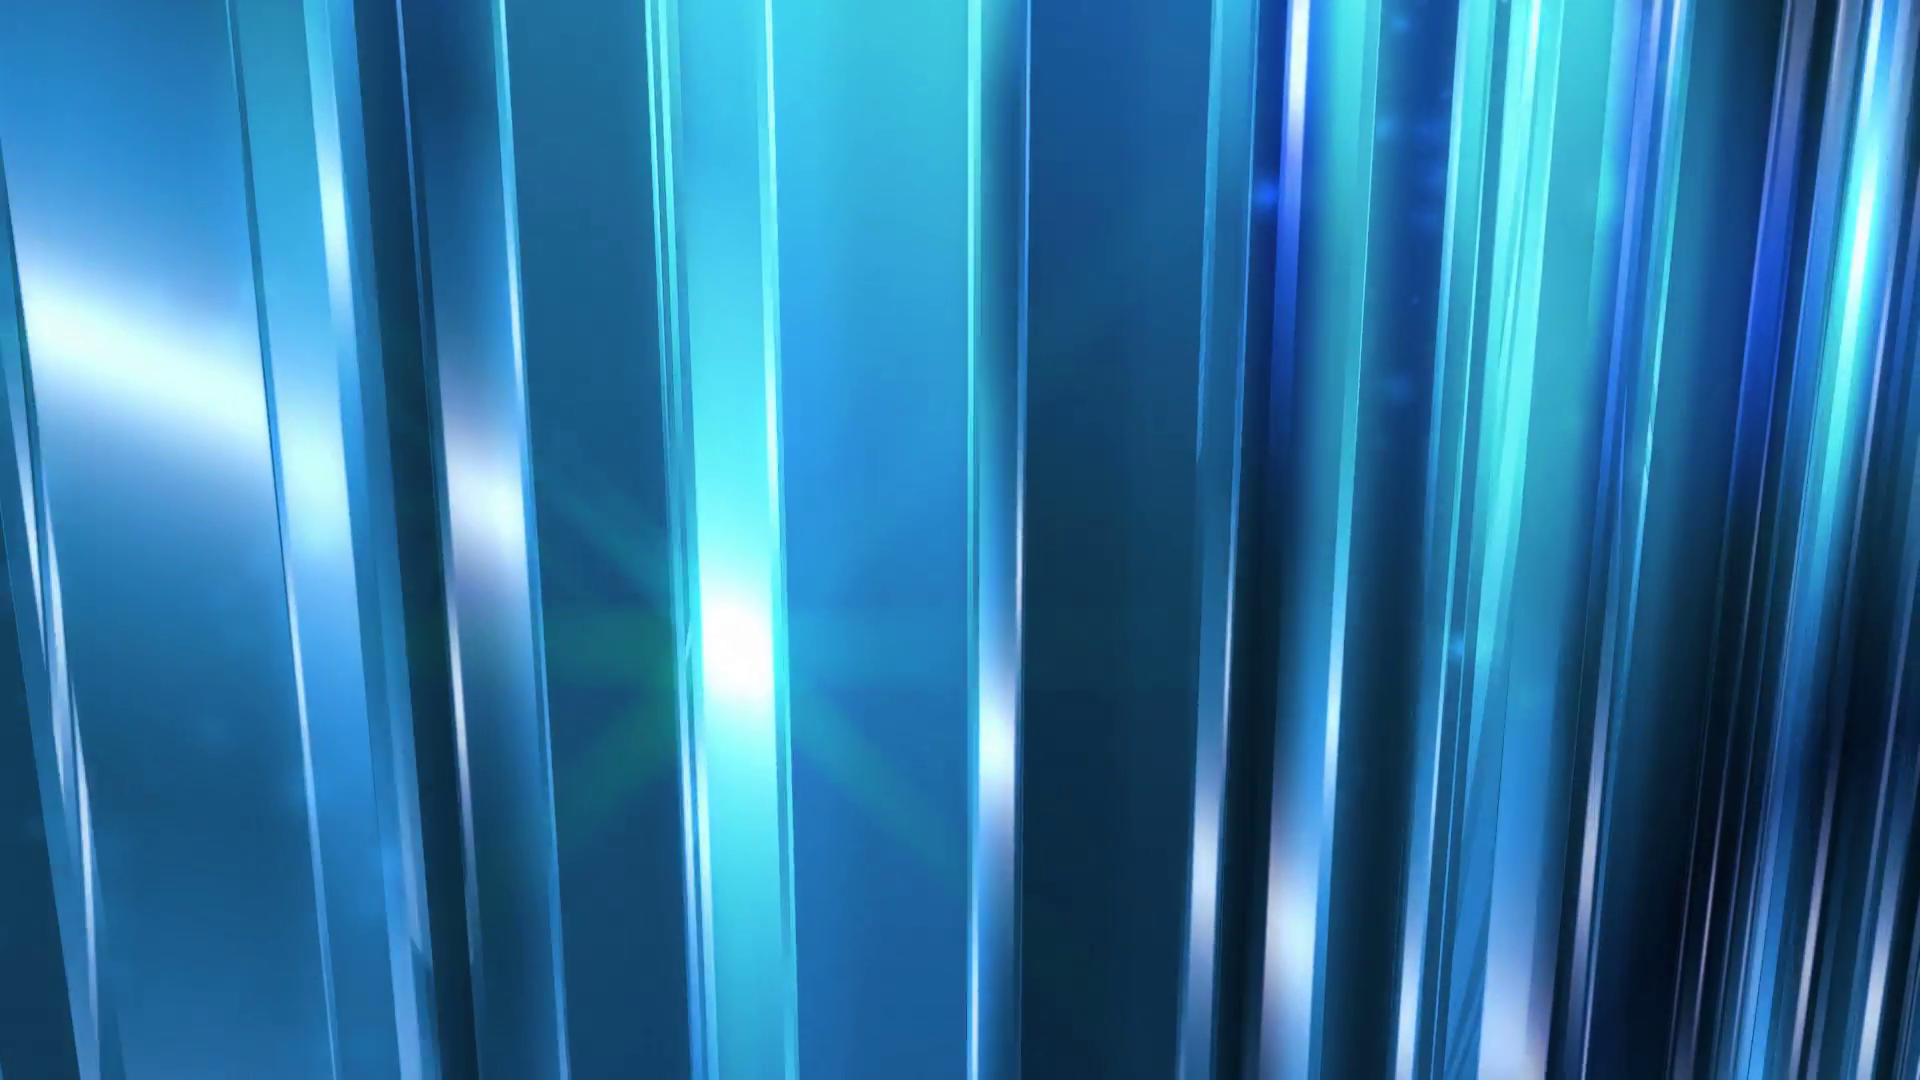 Abstract Blue Glass Bkgd Loop - Seamless, loopable animation of ...